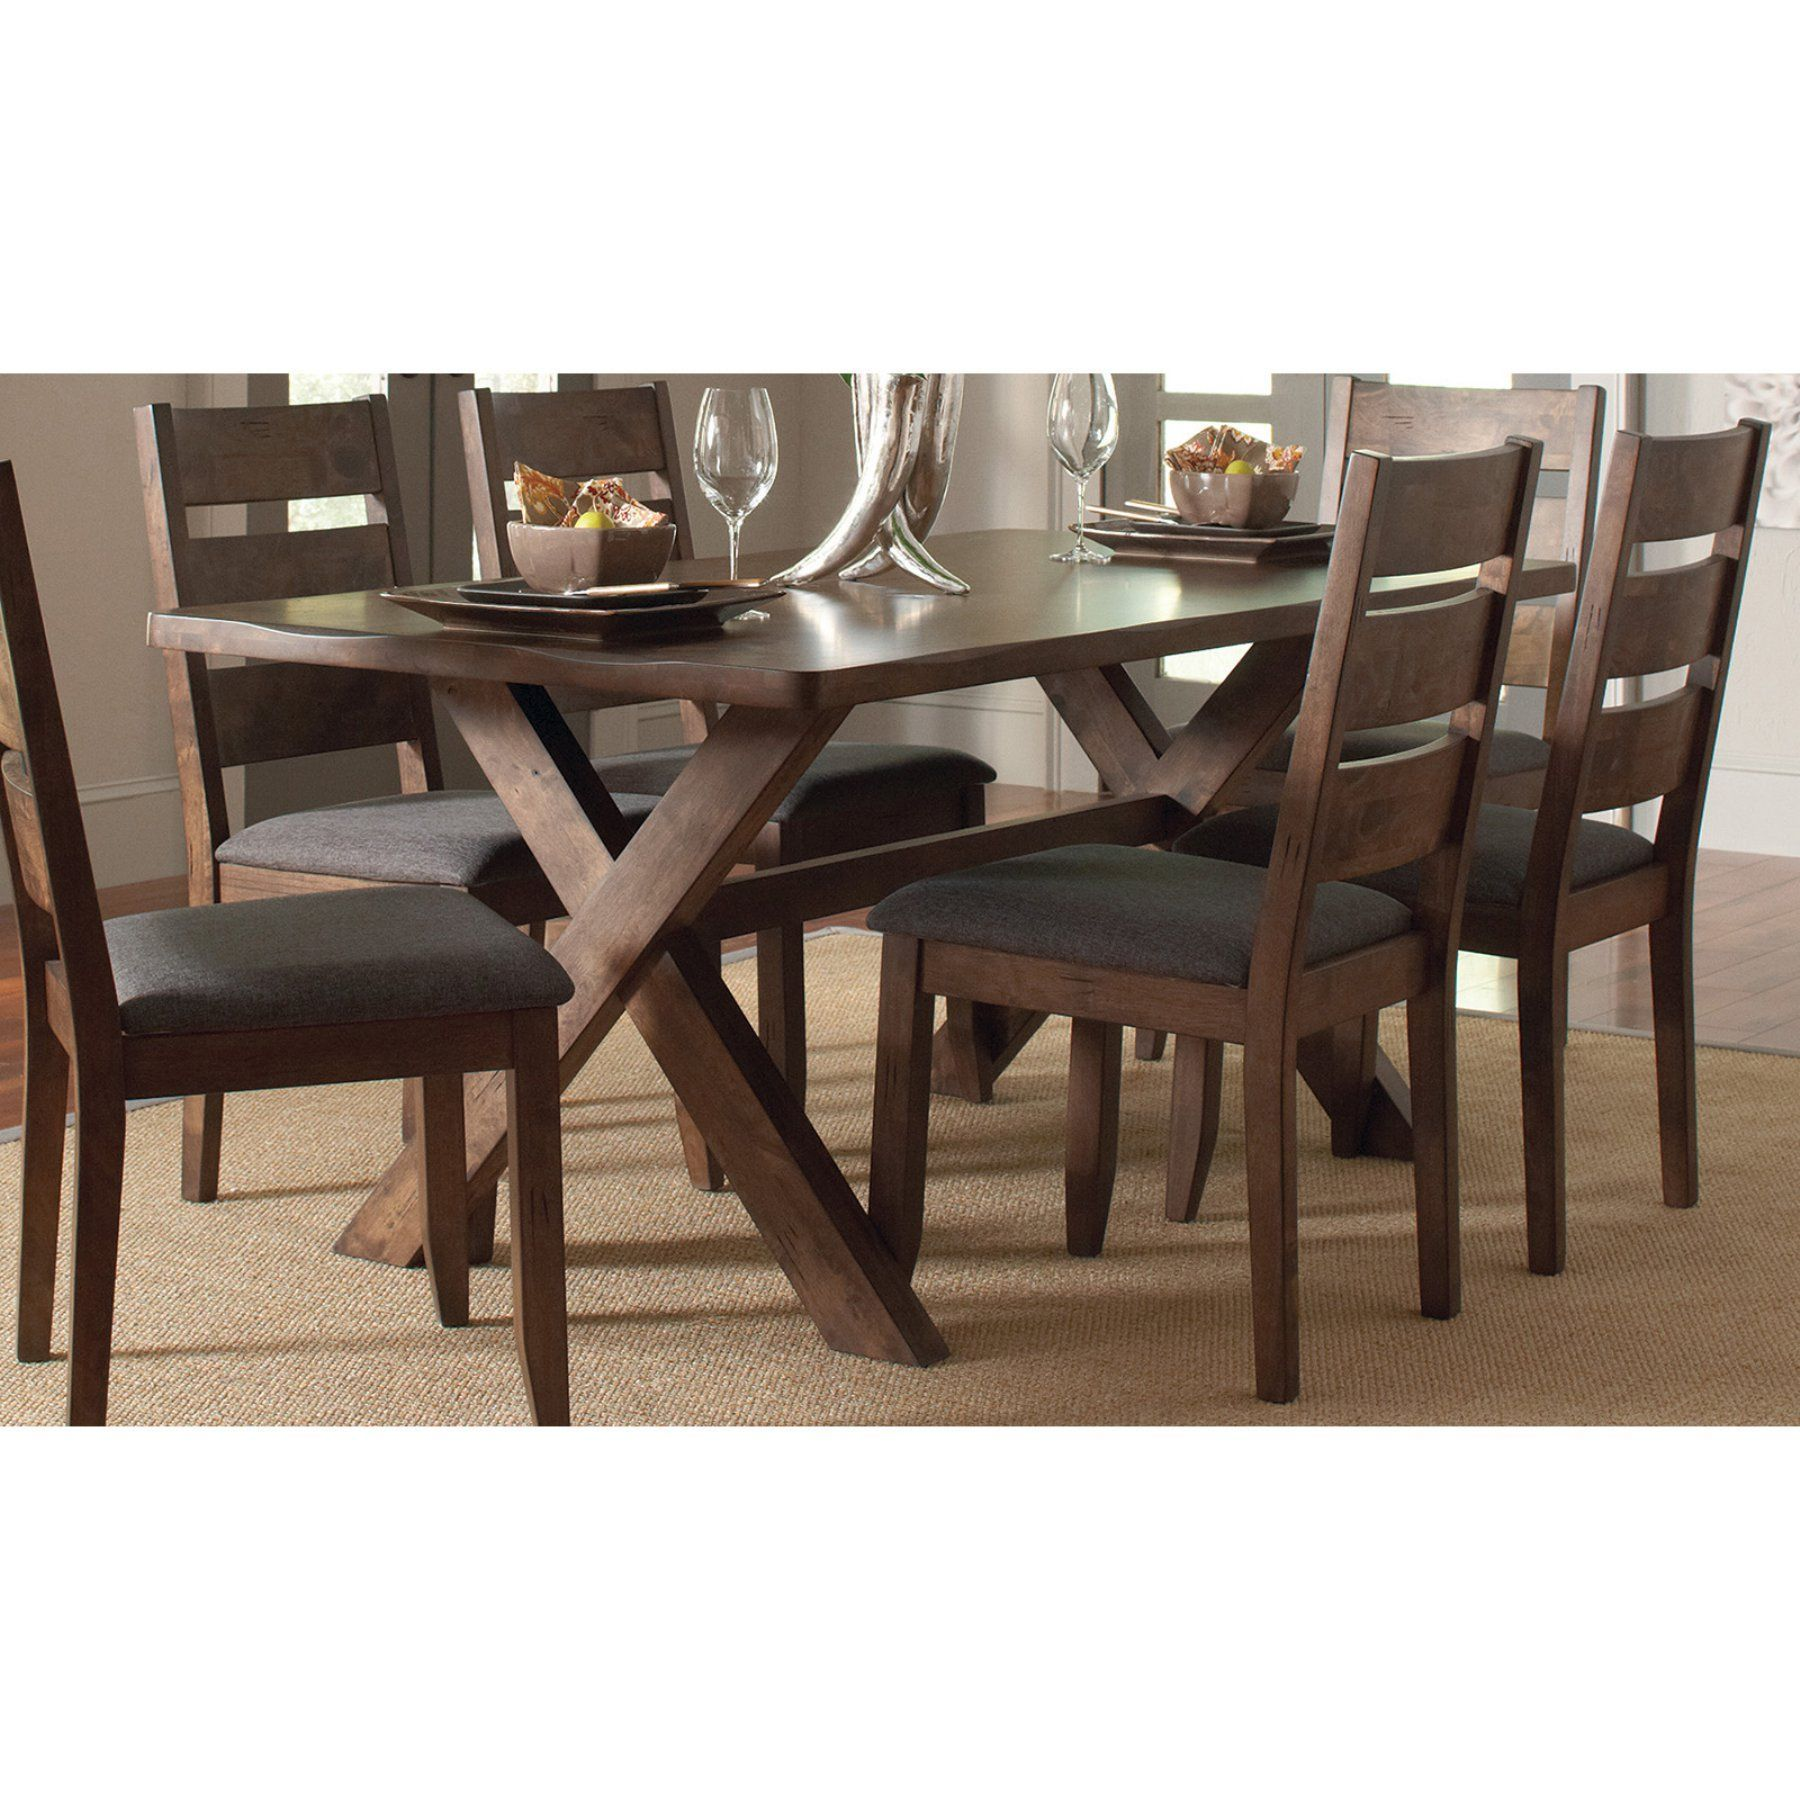 Coaster Furniture Alston Dining Table 106381